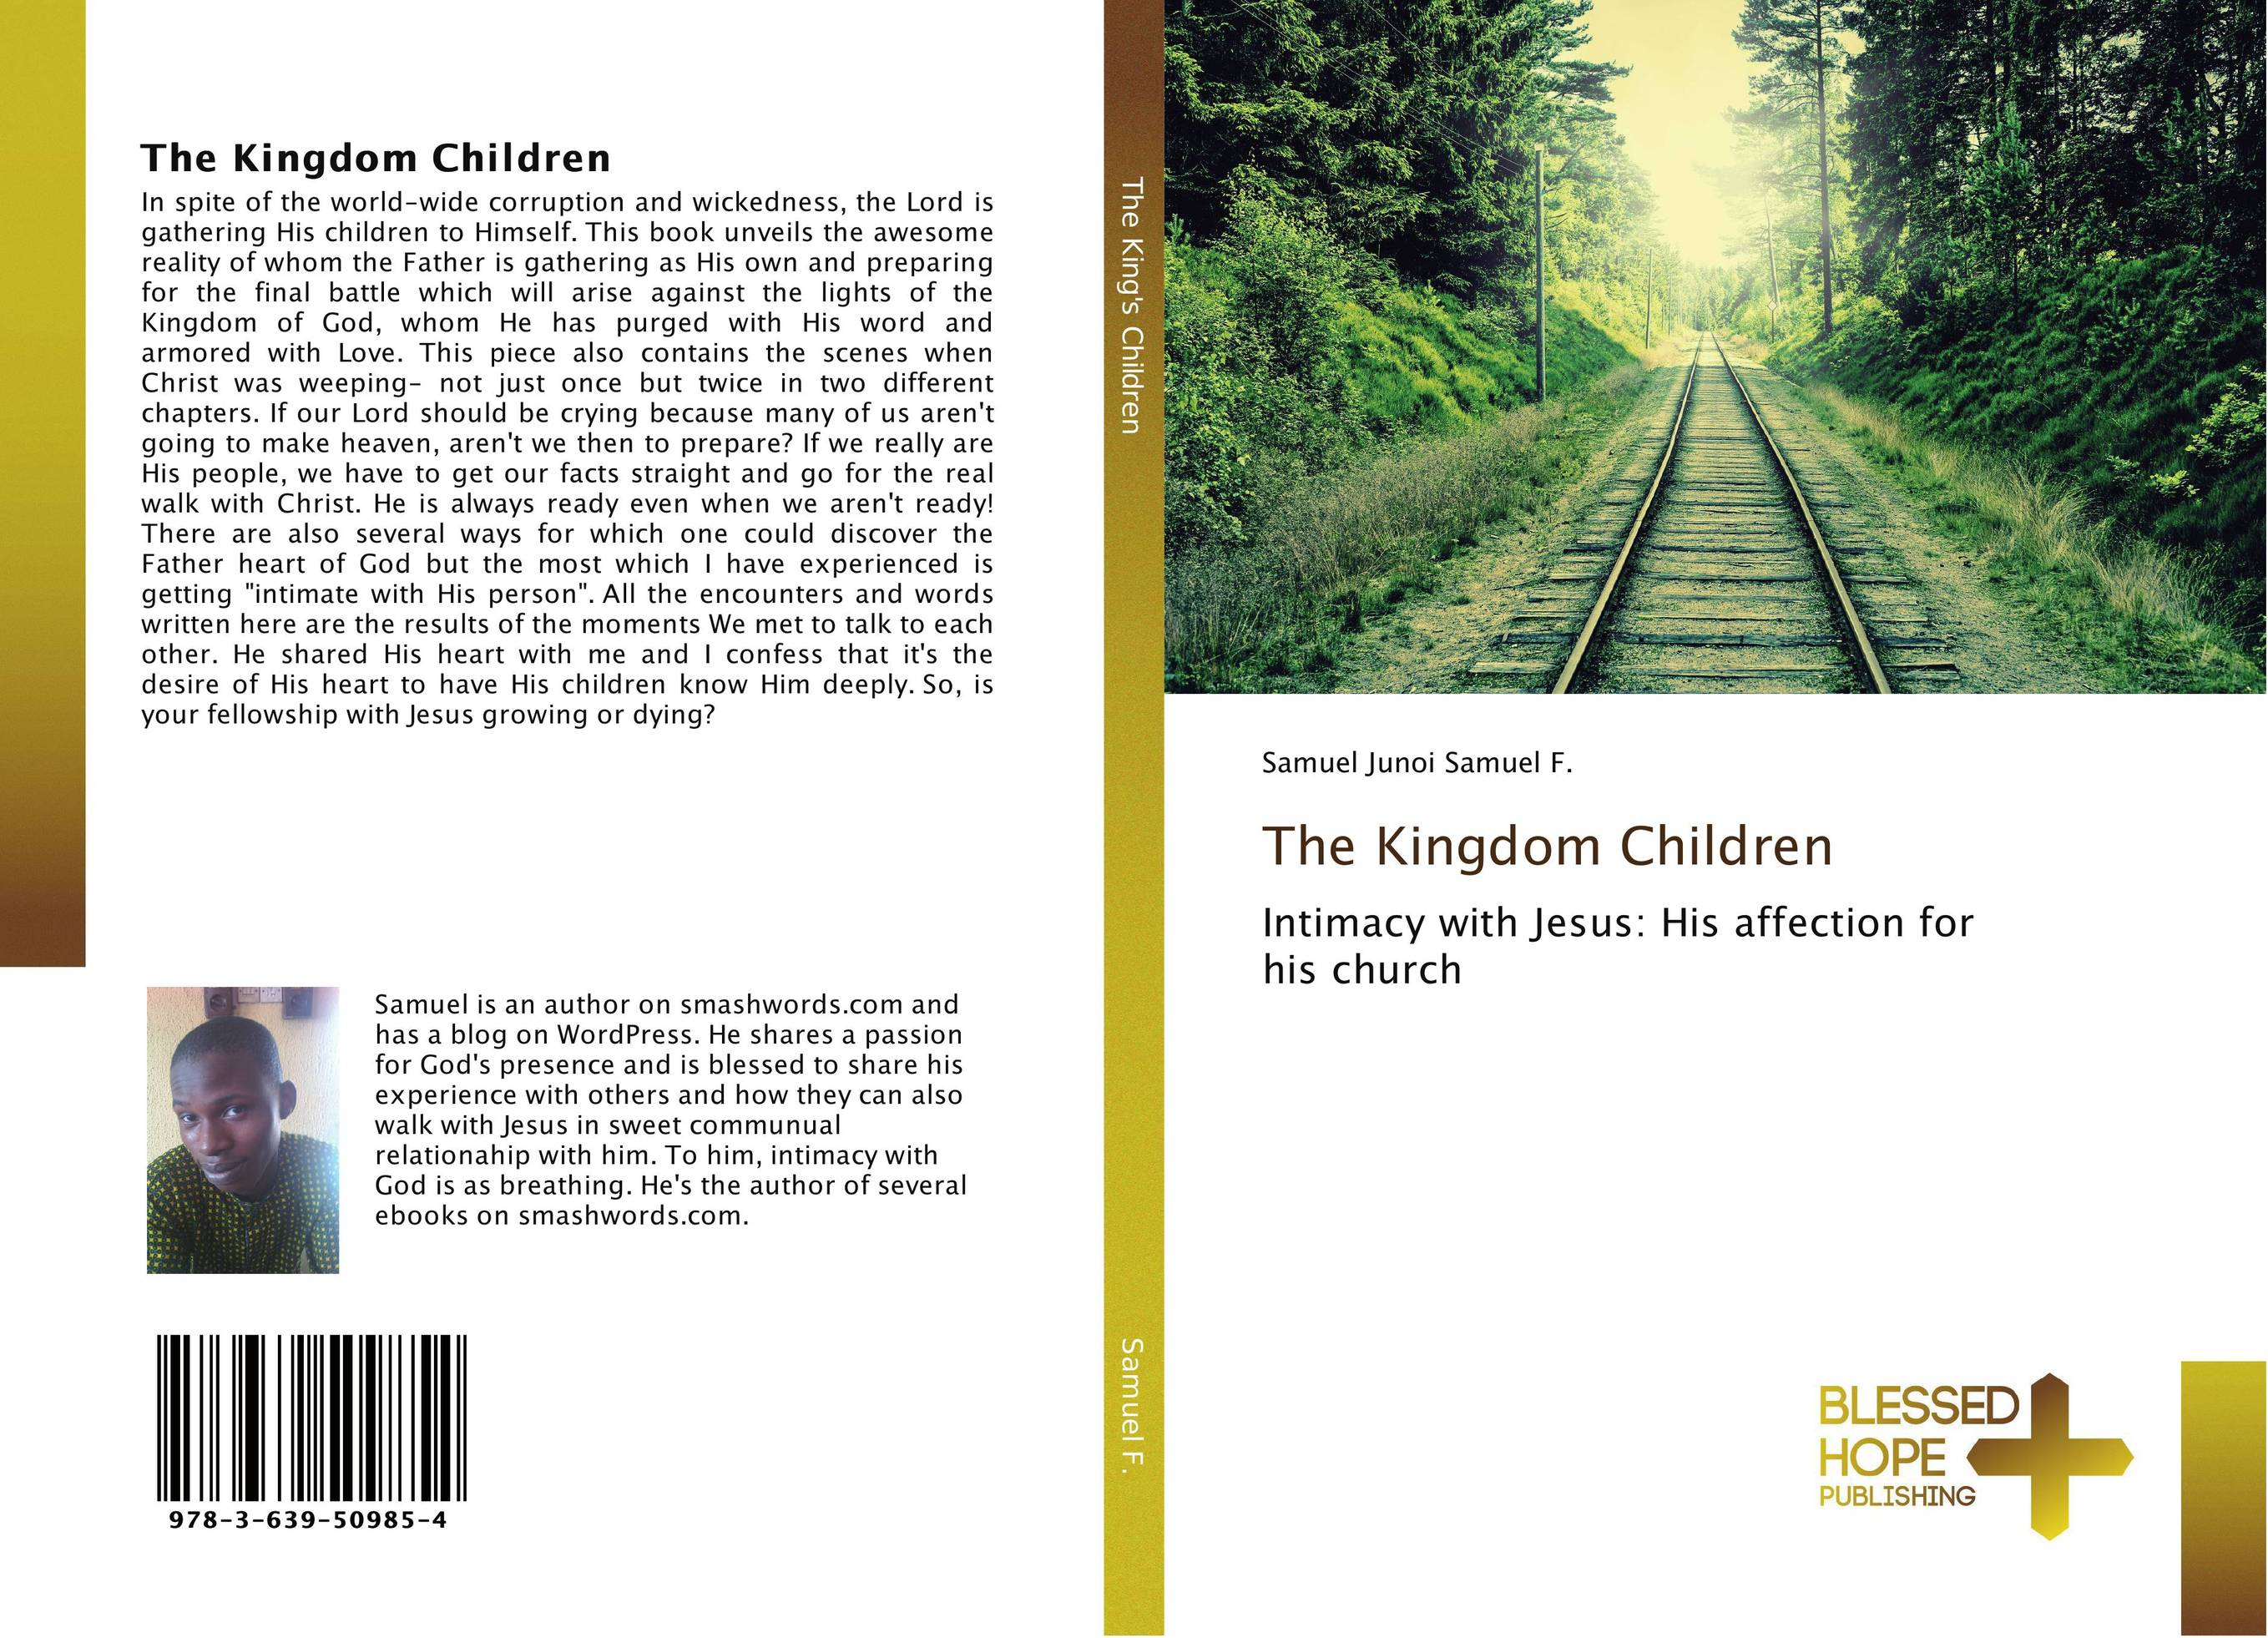 The Kingdom Children christ the lord out of egypt